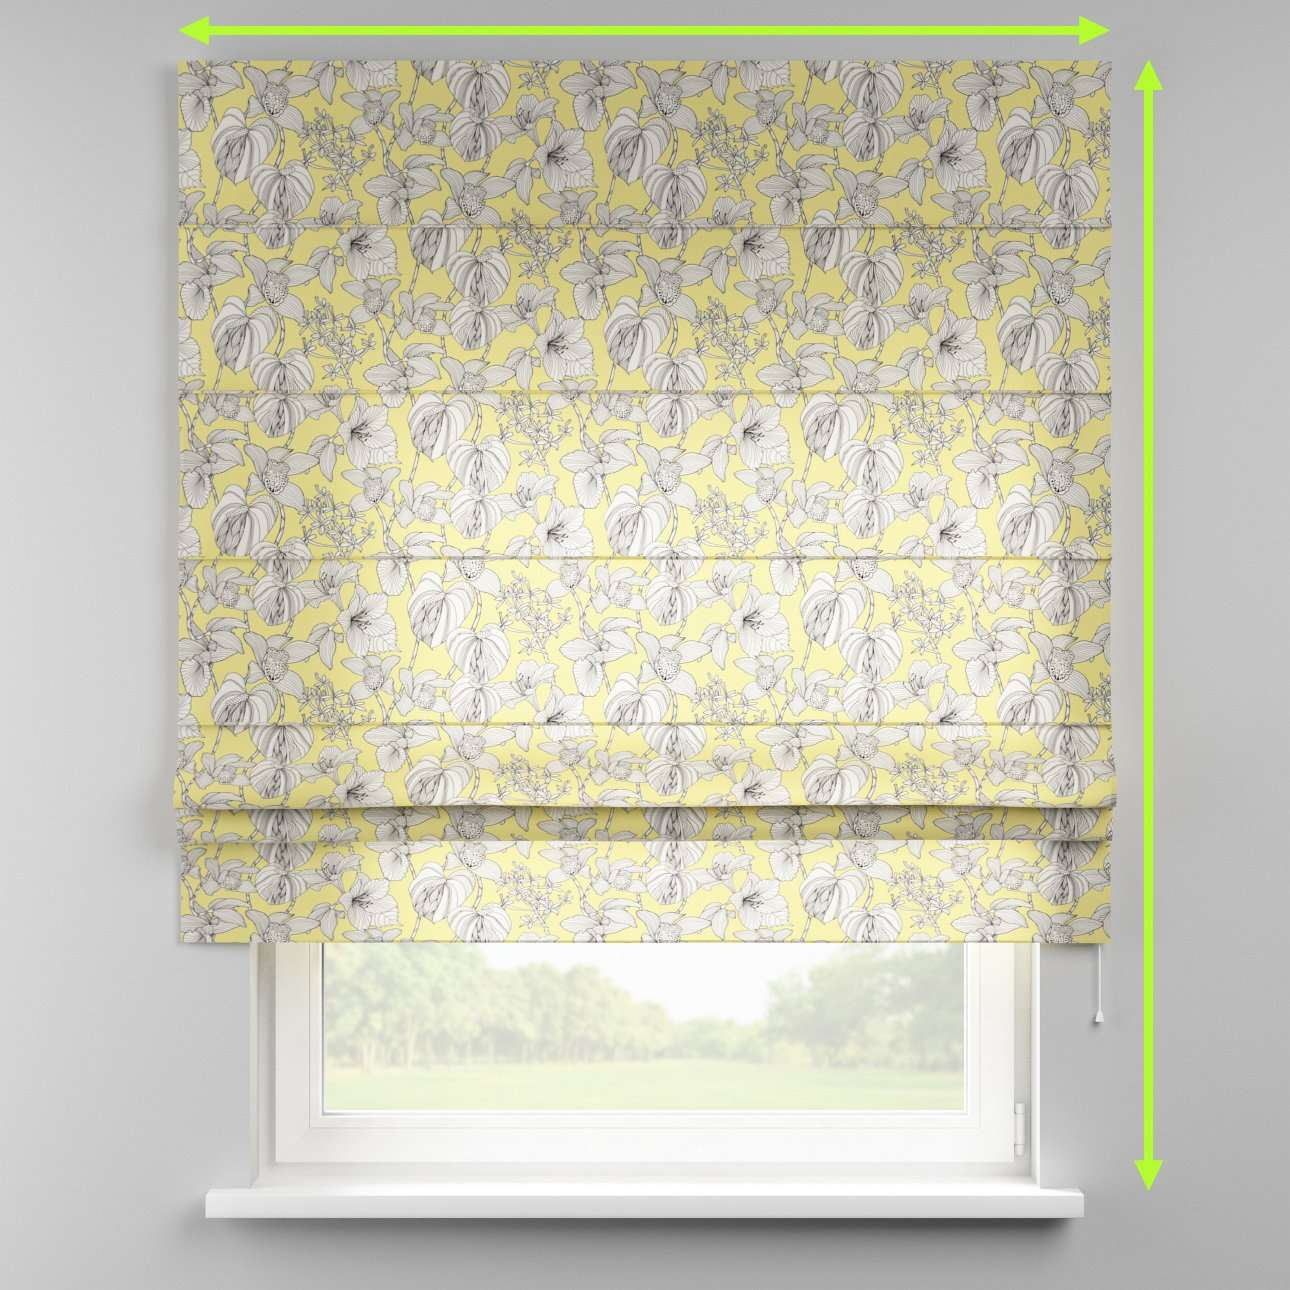 Padva roman blind in collection SALE, fabric: 137-78